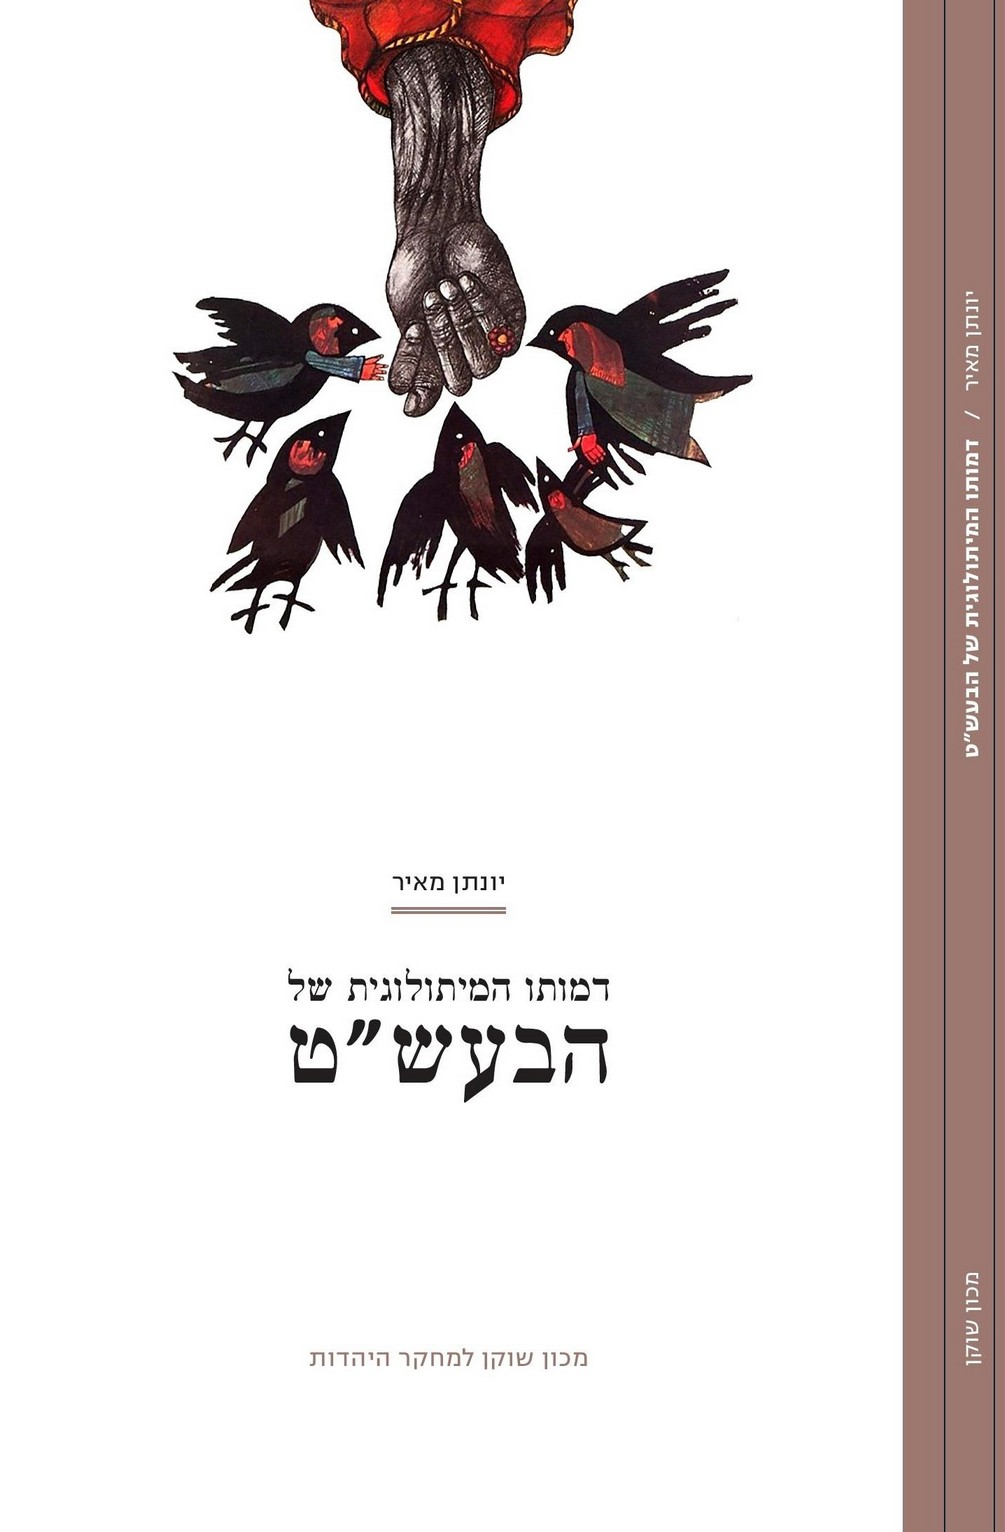 The Mythological Figure of Israel Baal Shem Tov / Jonatan Meir